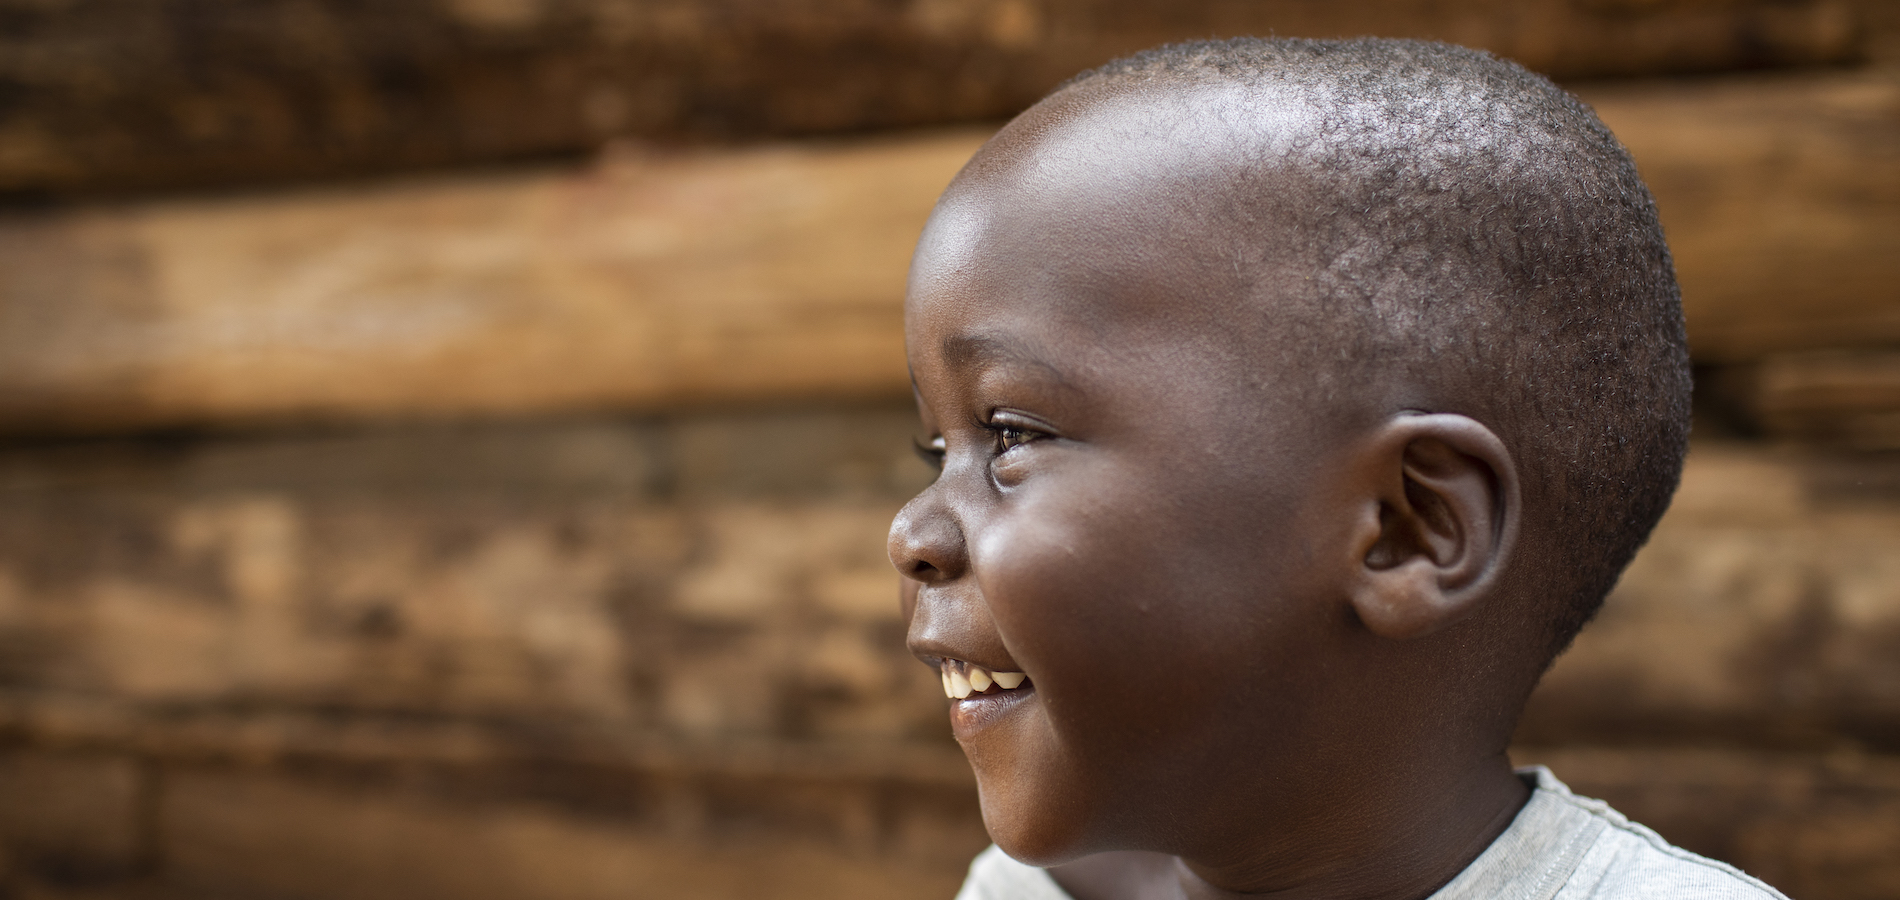 Close up of a little boy smiling with his head turned to the side